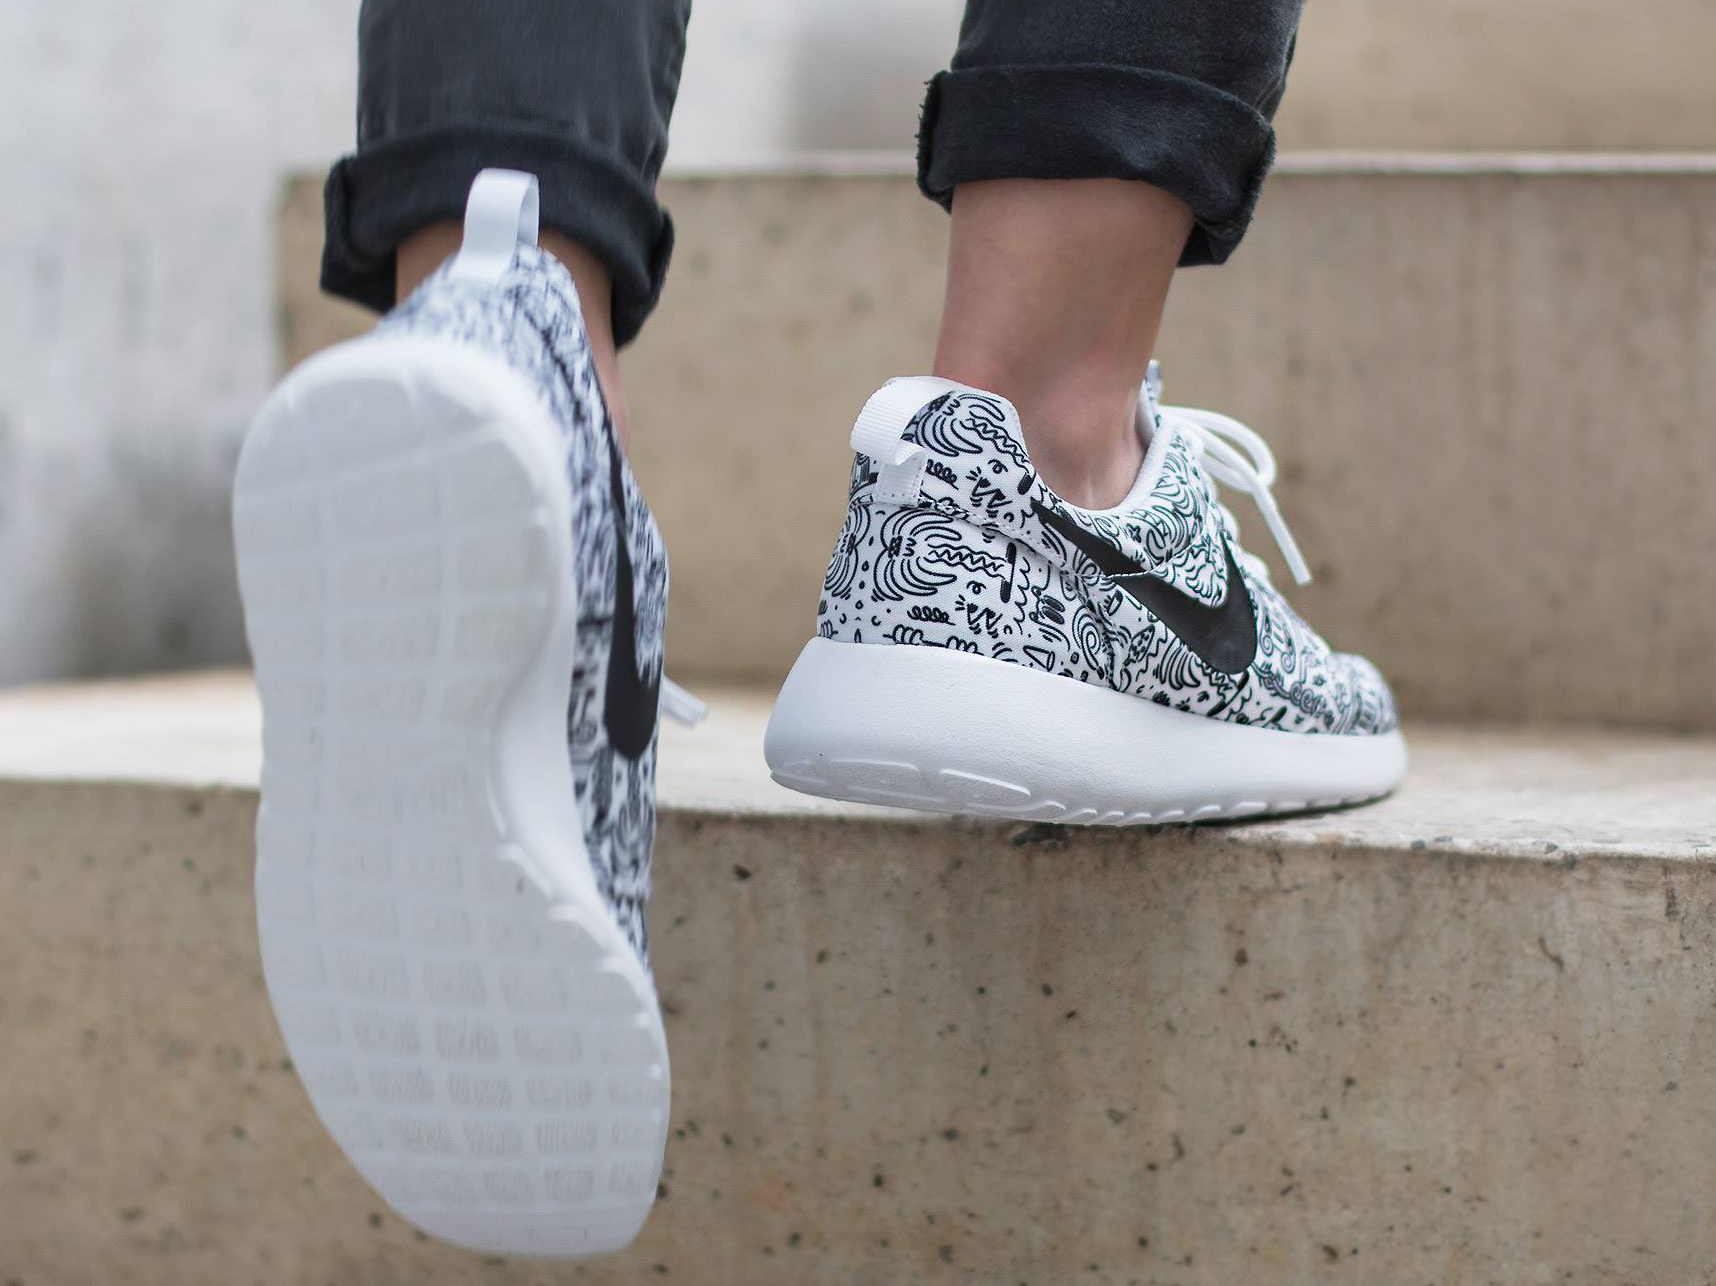 Basket Steven Harrington x Nike Roshe Run Print 'Doodle' (4)